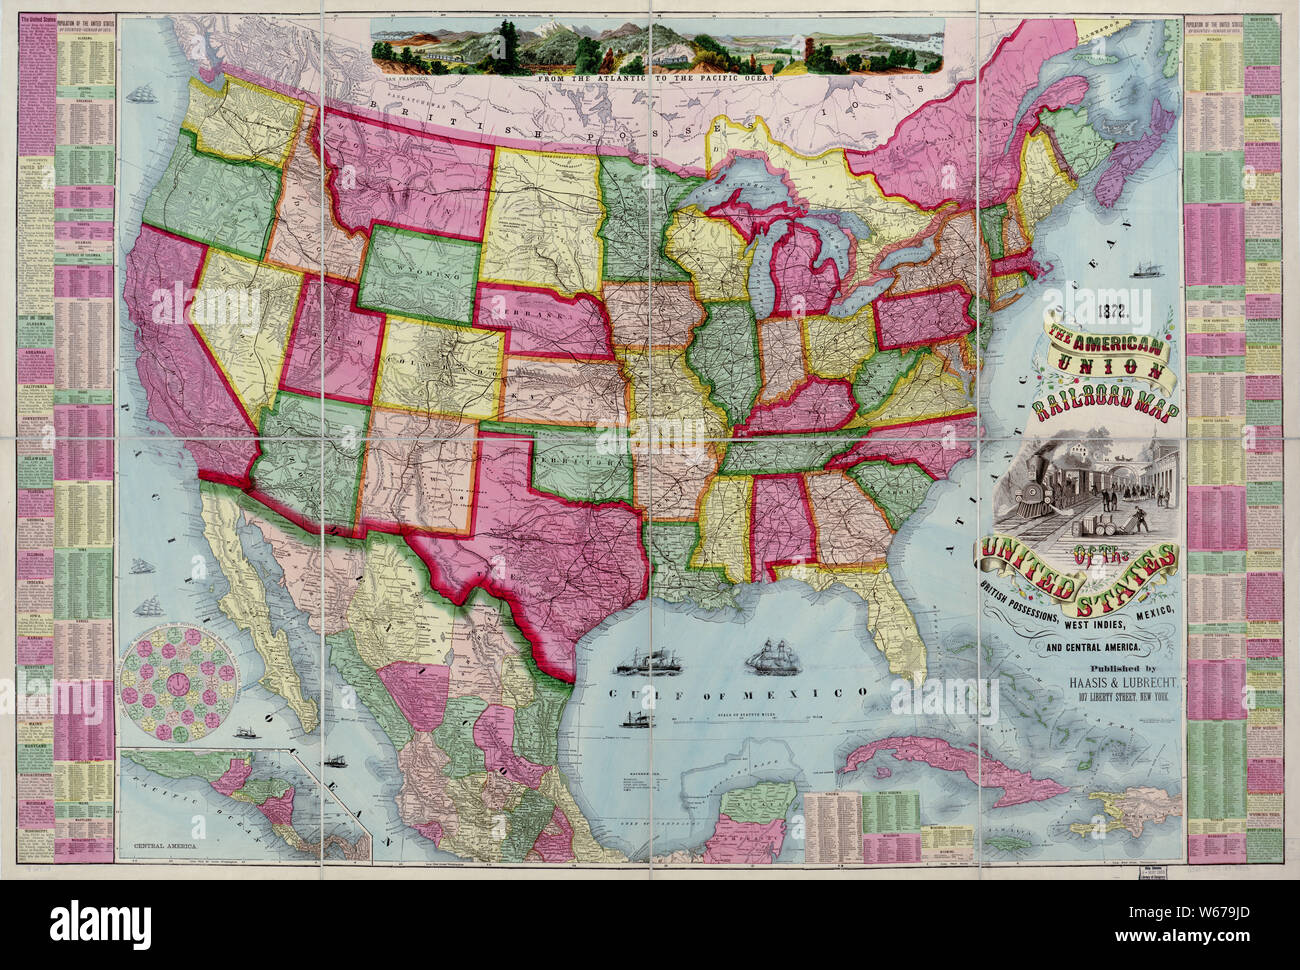 172 Norfolk St On Subway Map.Railroad Map Of The United States Stock Photos Railroad Map Of The